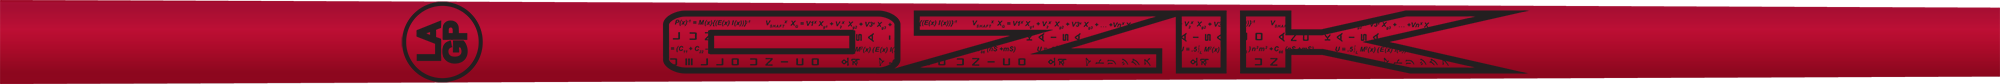 Ozik White Tie: Red Black Satin - Wood 60 S